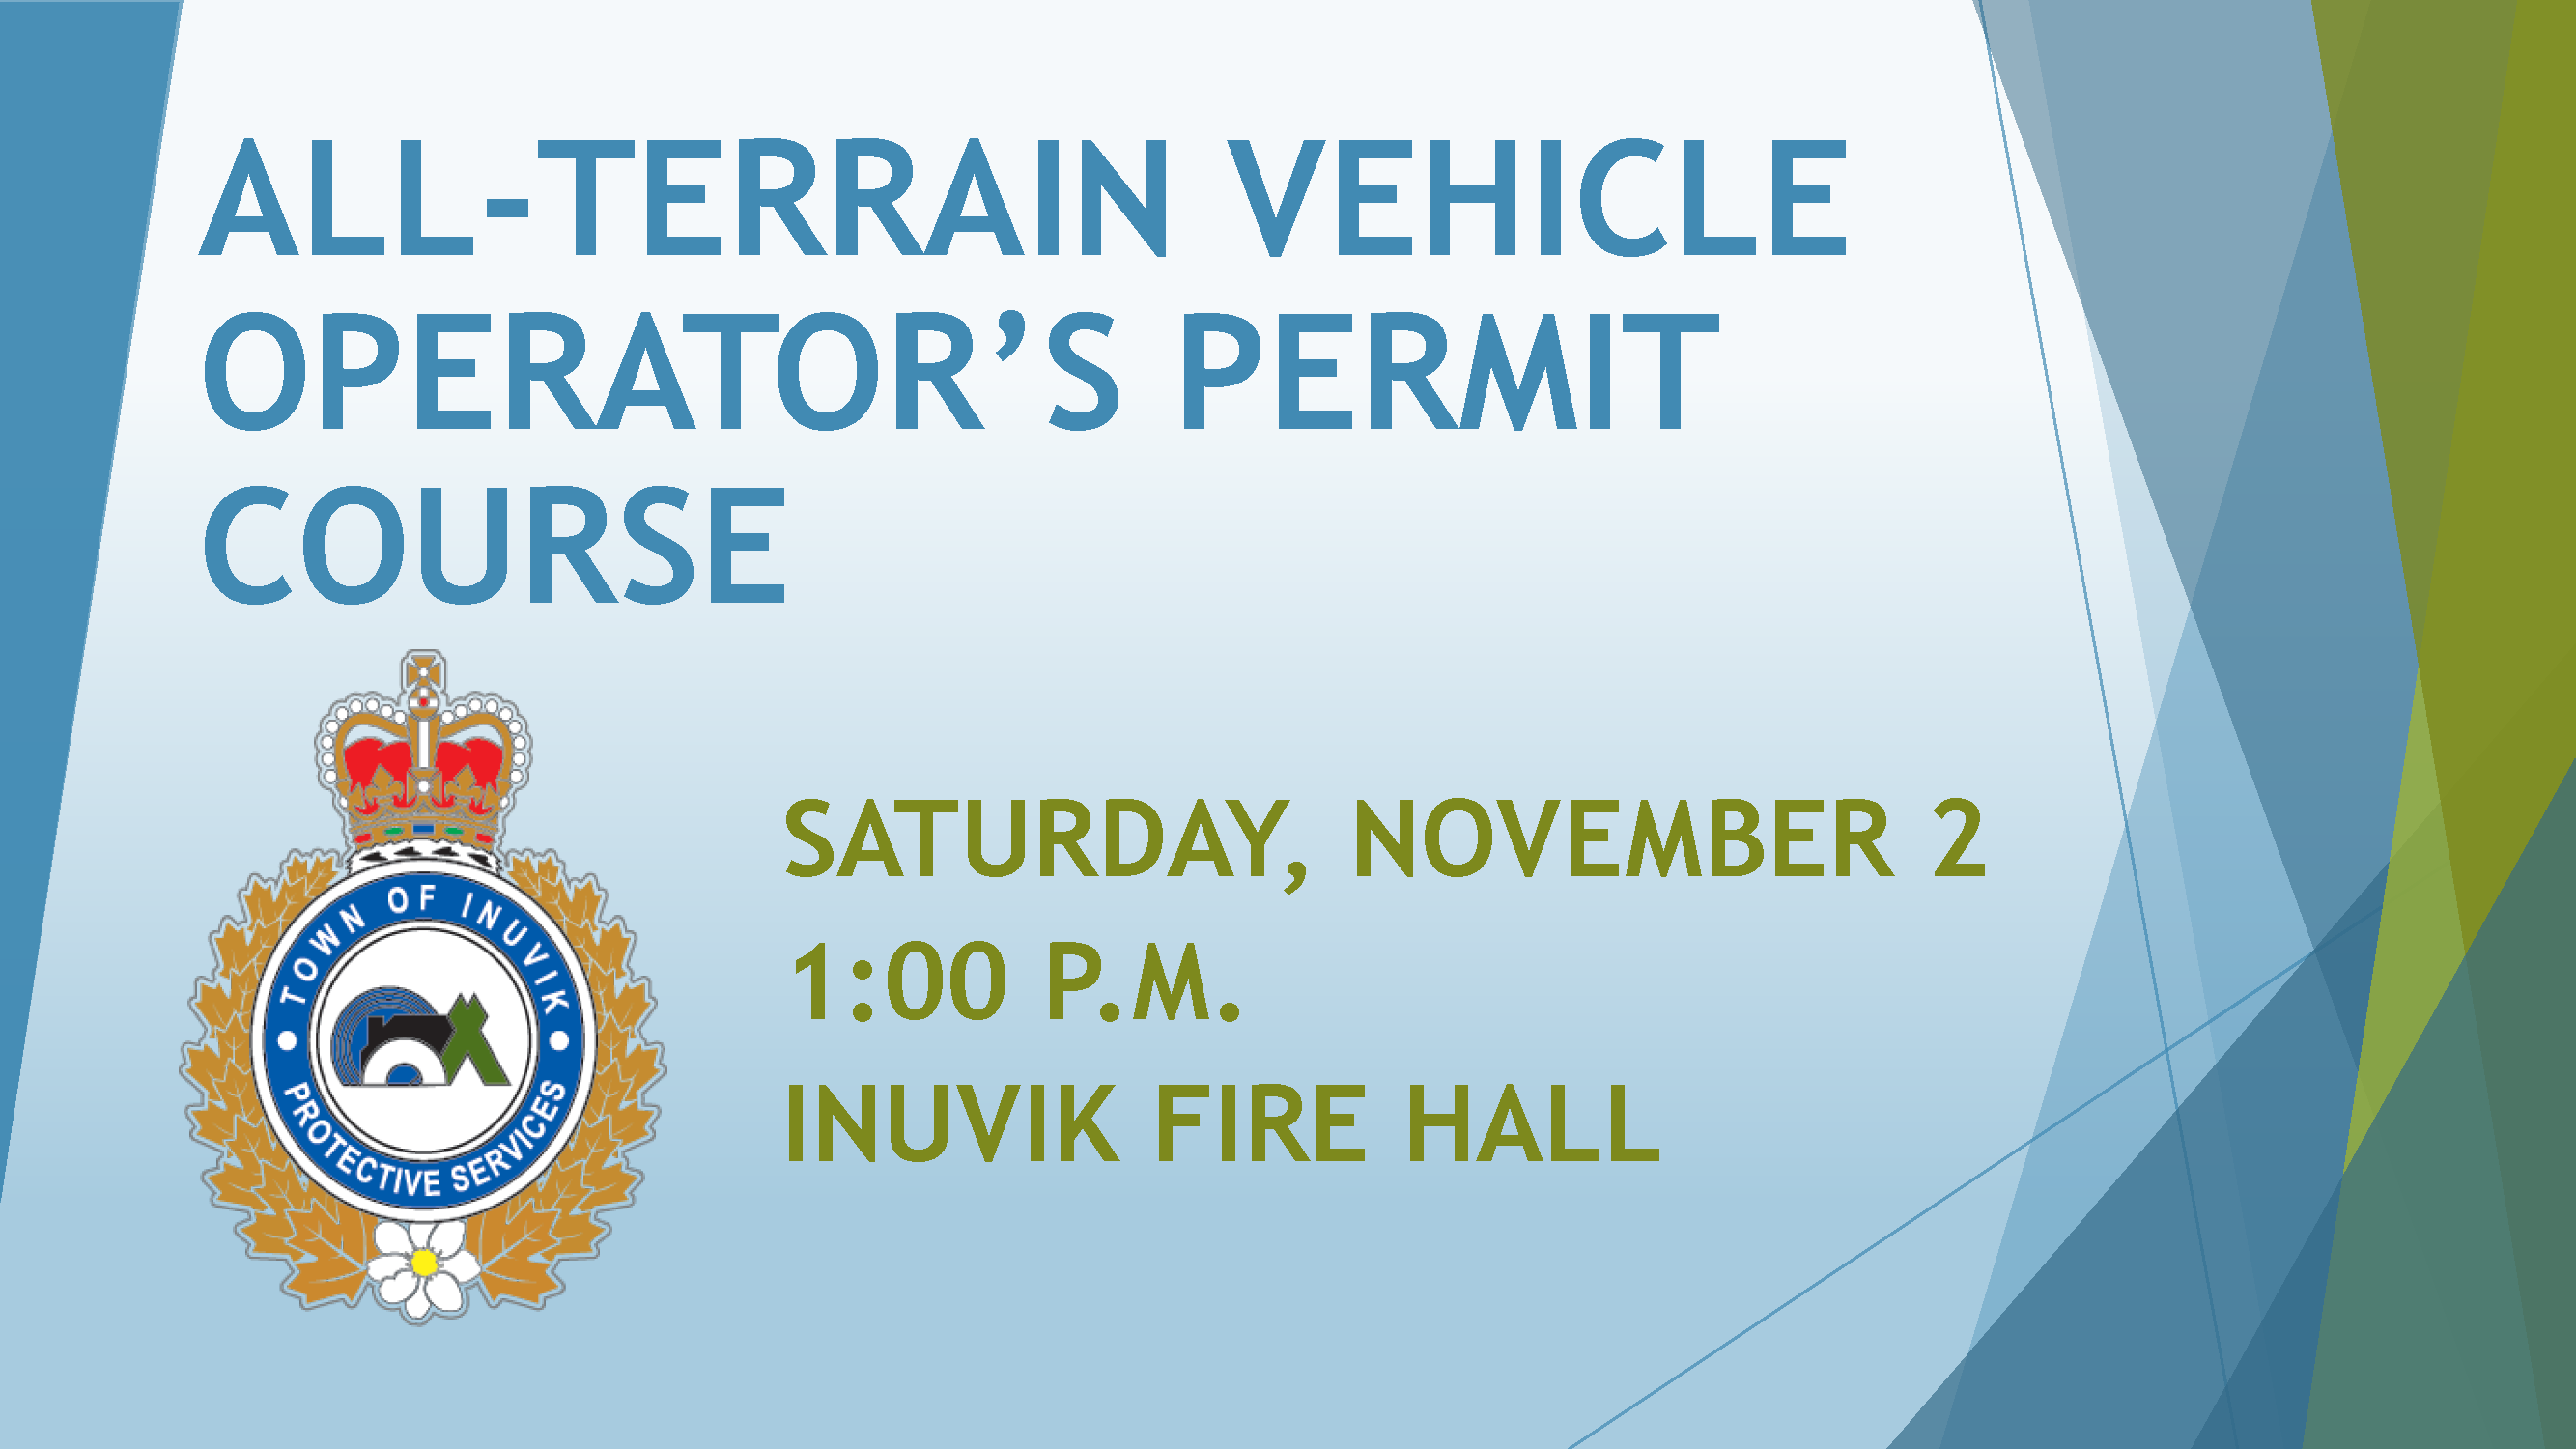 ALL-TERRAIN VEHICLE OPERATOR'S PERMIT COURSE